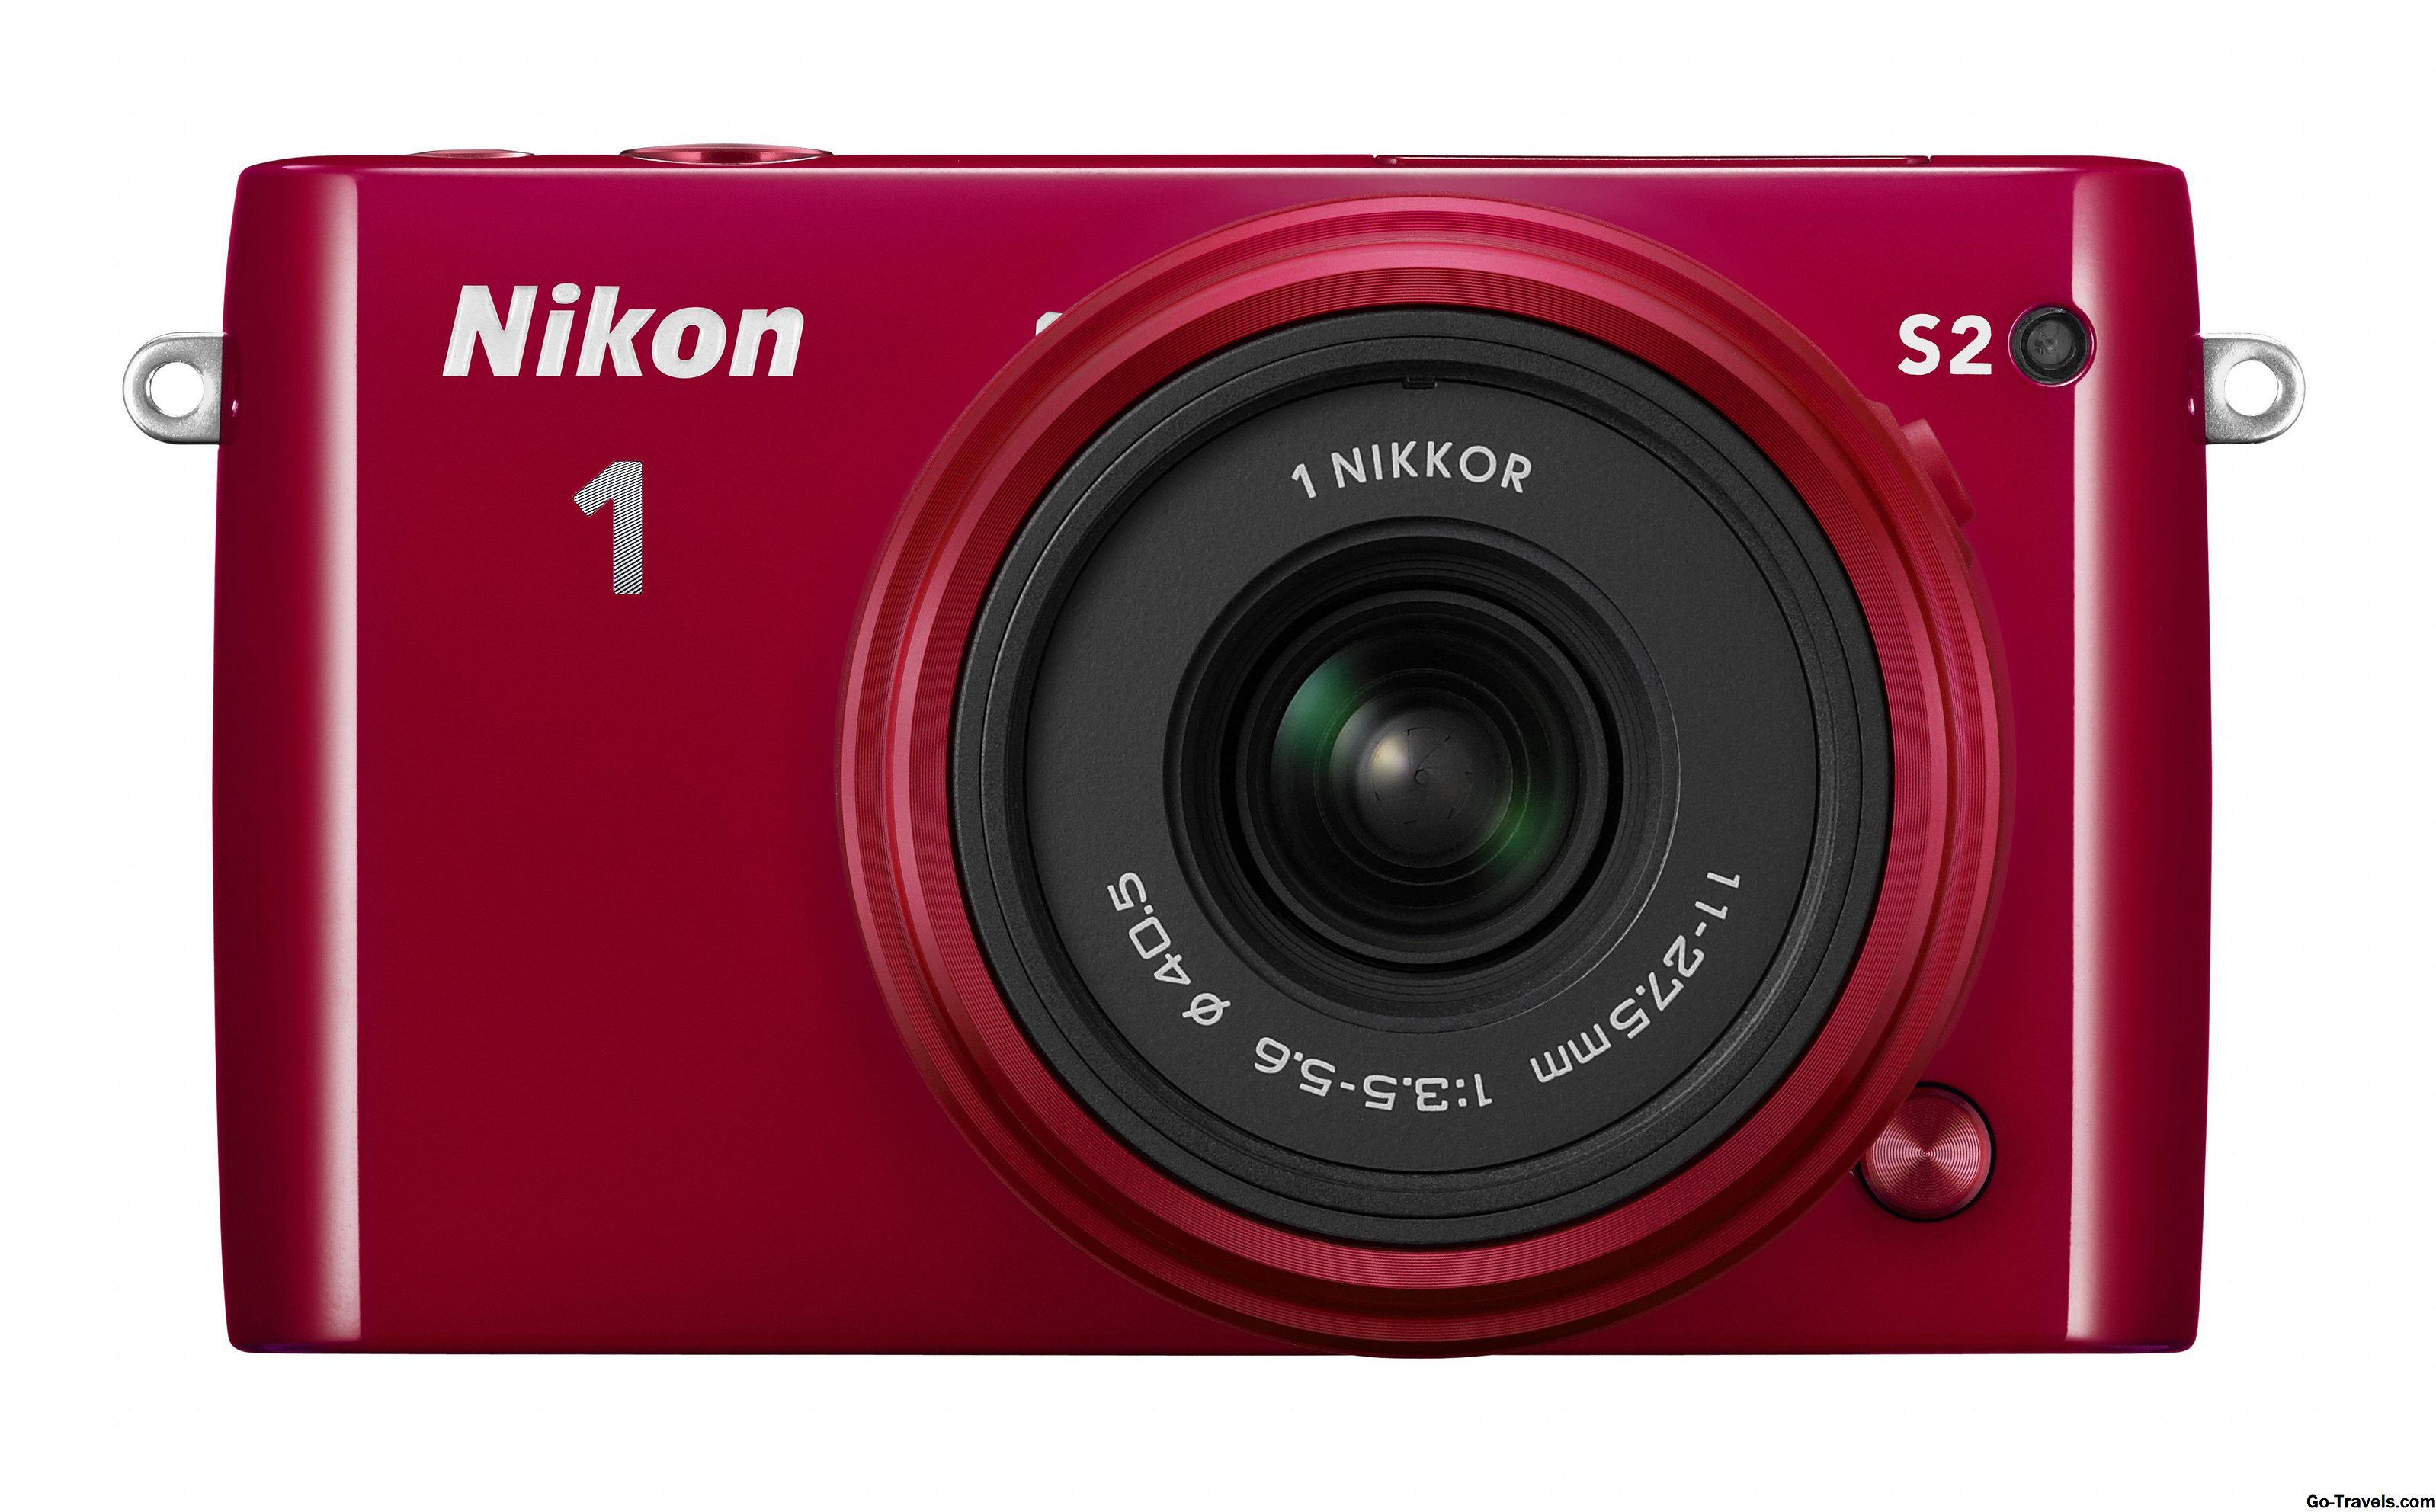 Nikon 1 S2 Mirrorless Camera Review